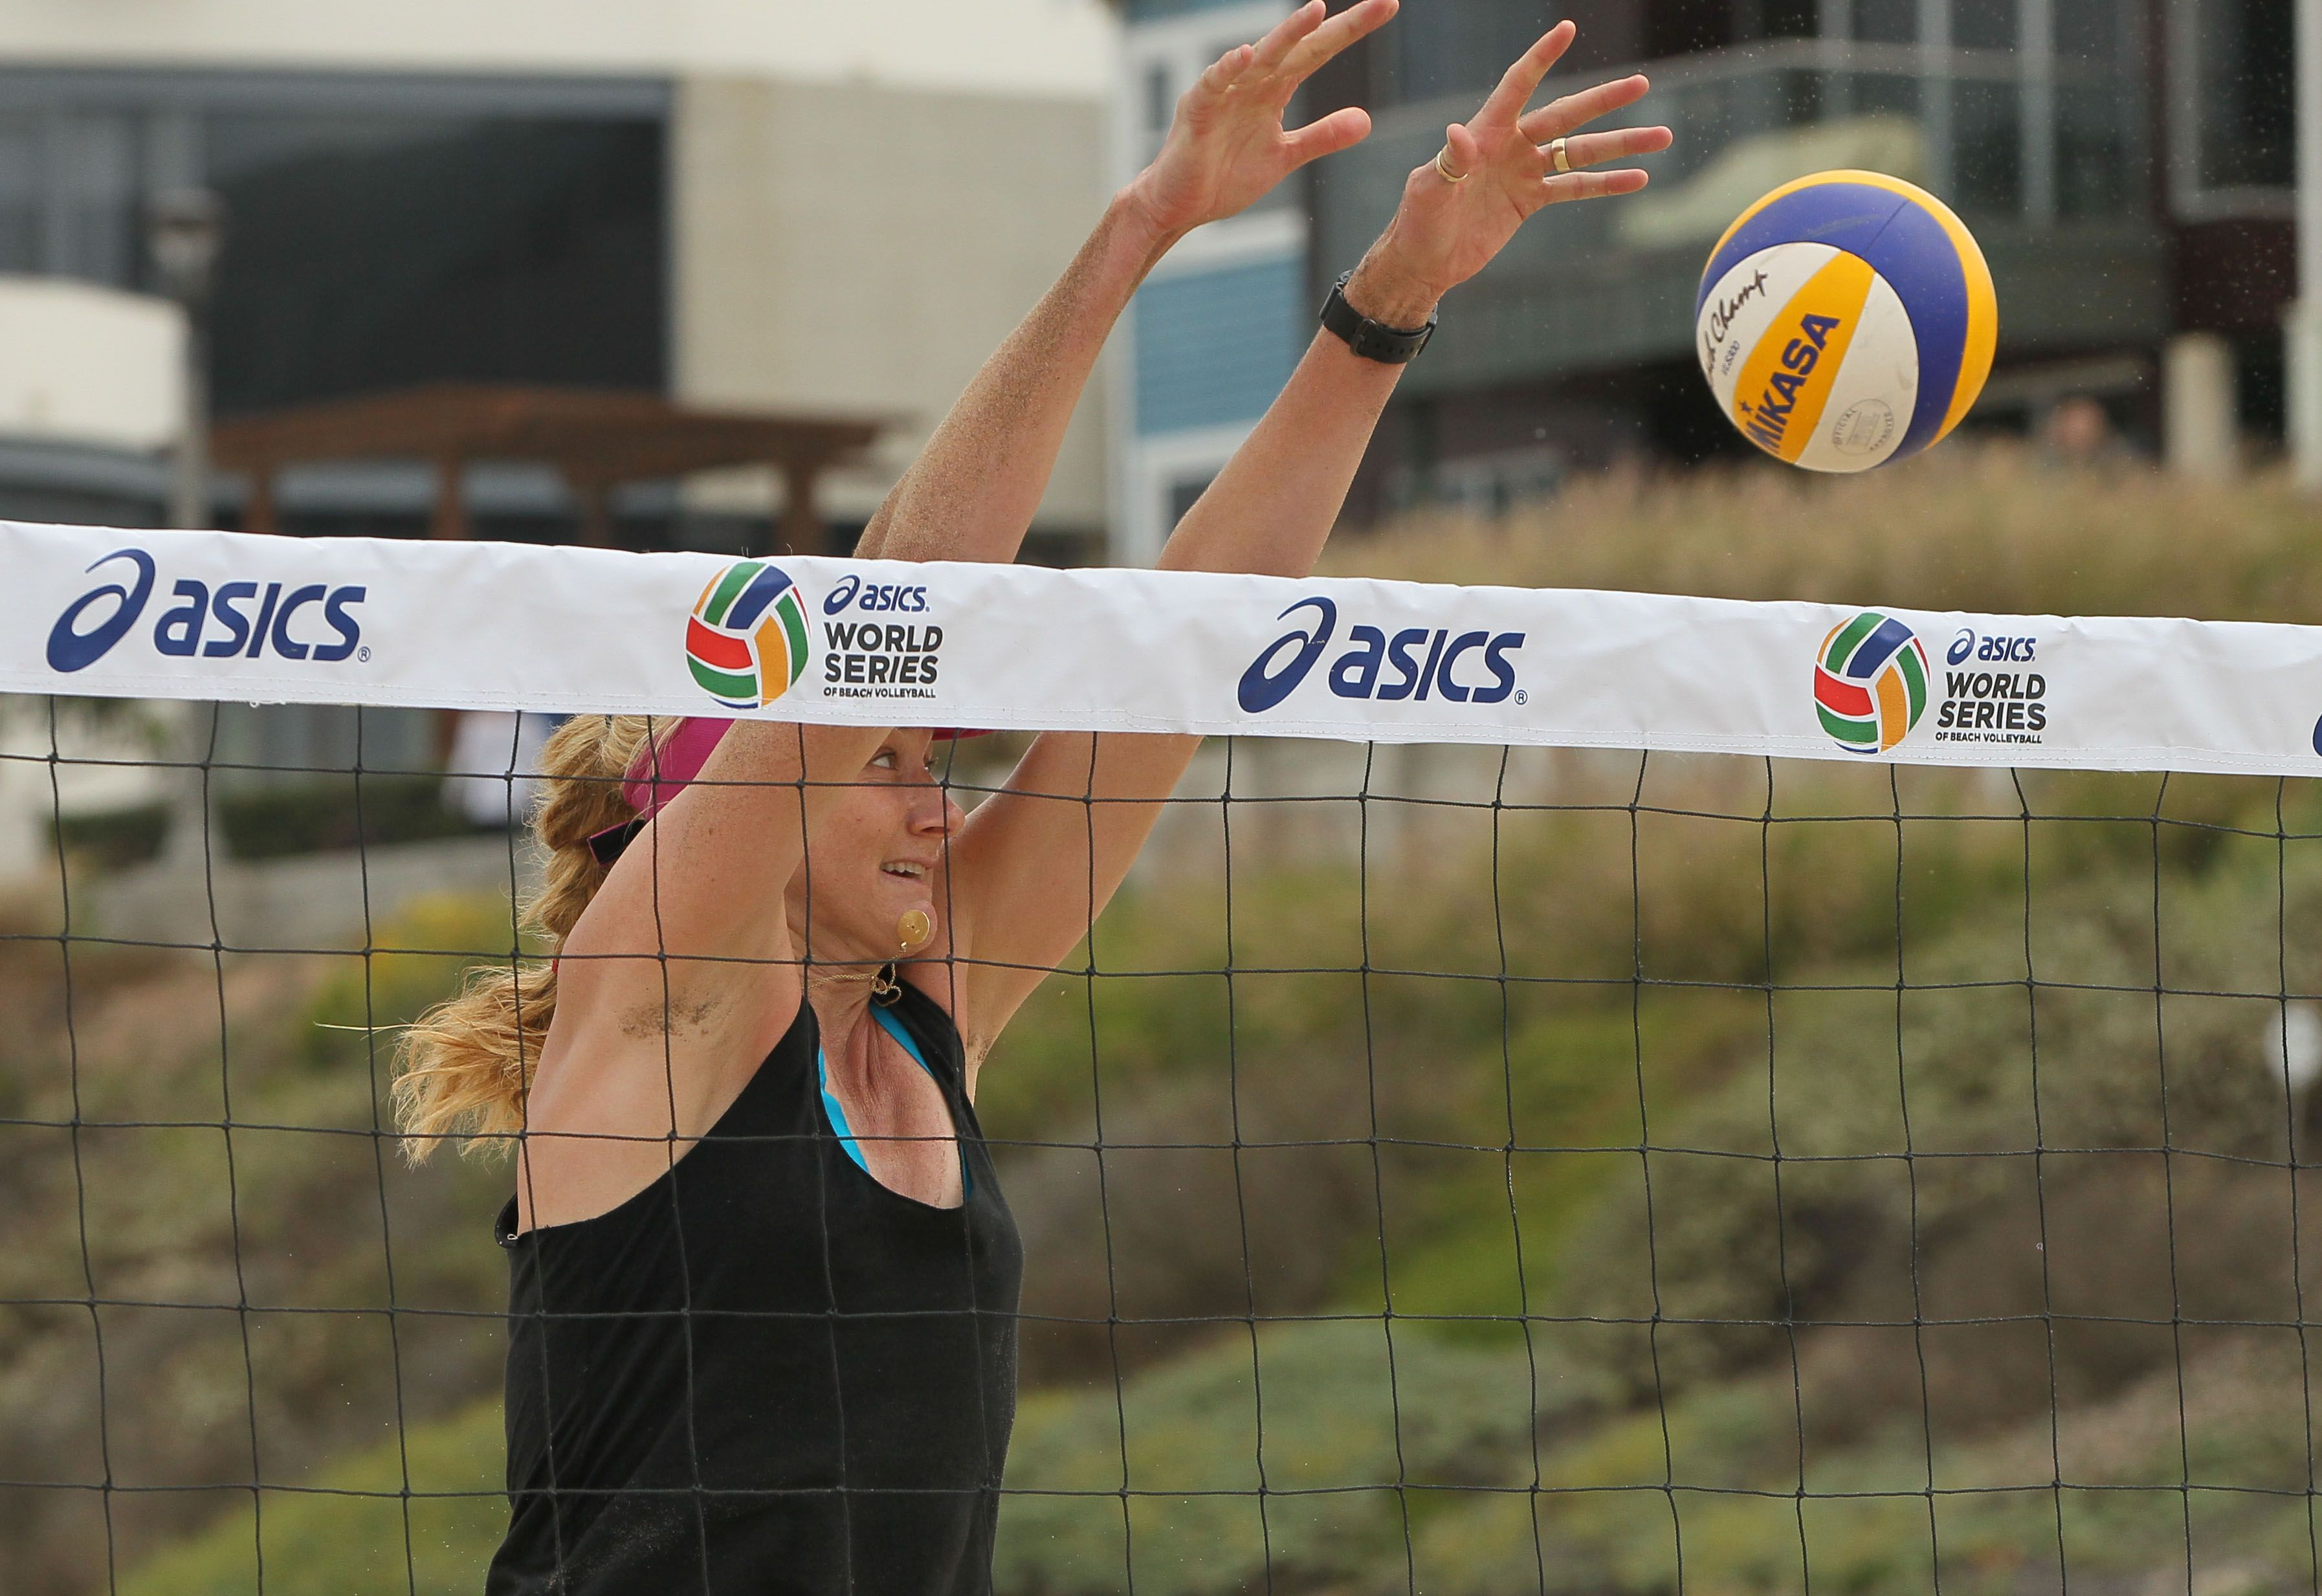 Kerri Walsh Jennings Asics World Series Of Beach Volleyball Sports Imports Net Outdoor Volleyball Net Volleyball Net Volleyball Equipment